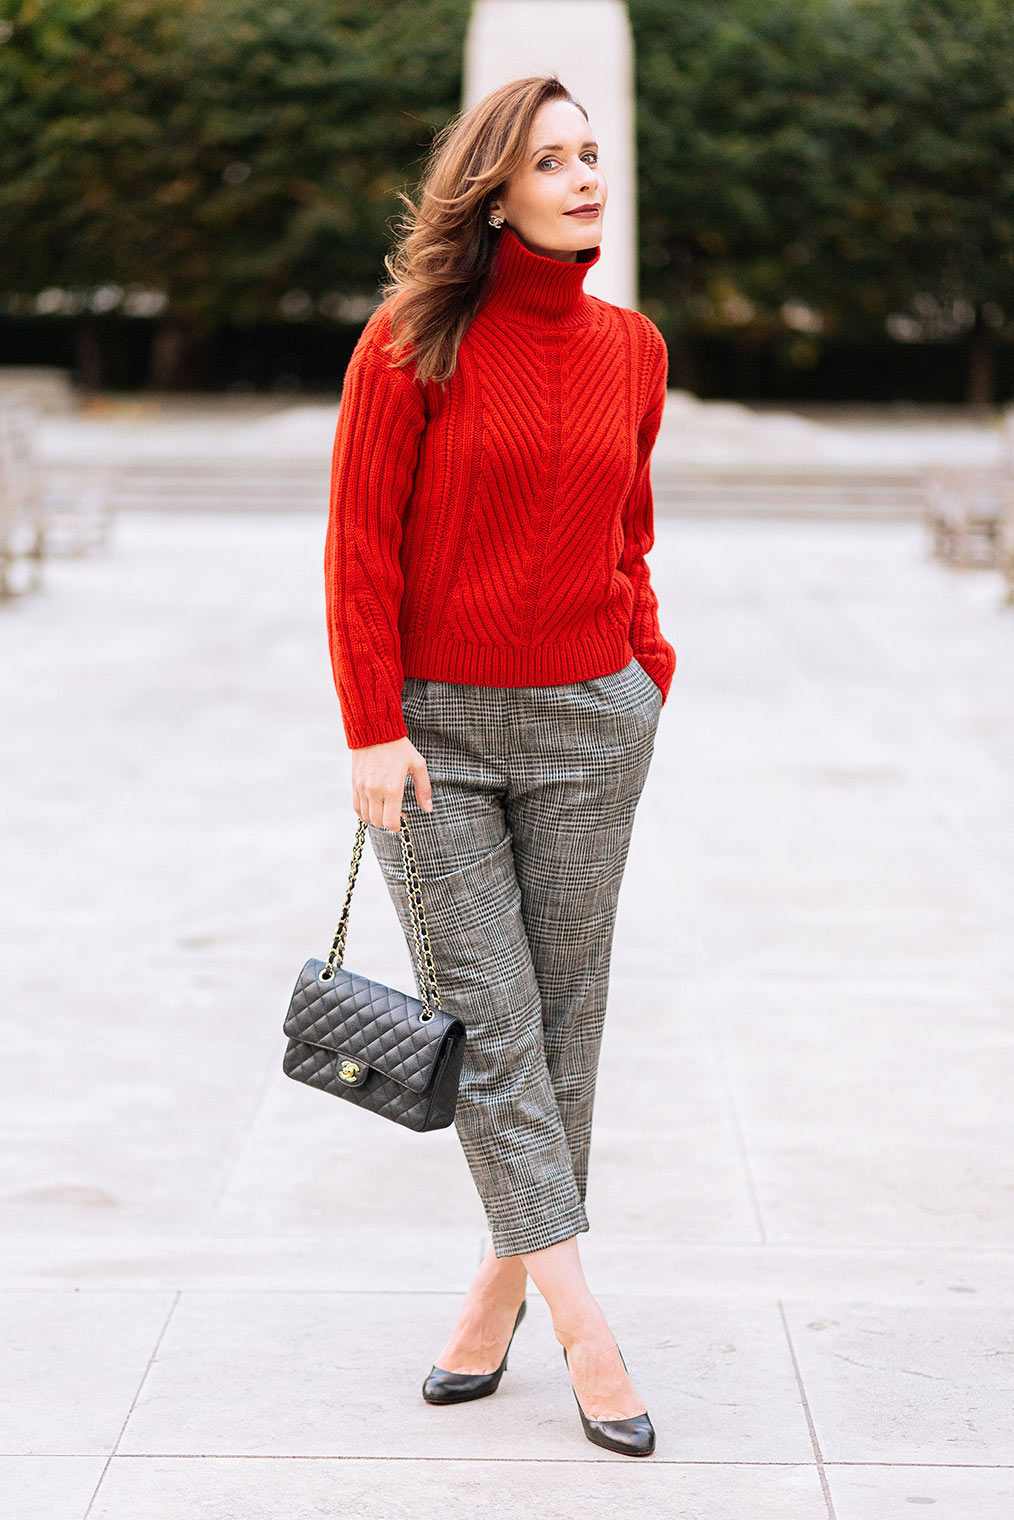 Fall trend red sweater